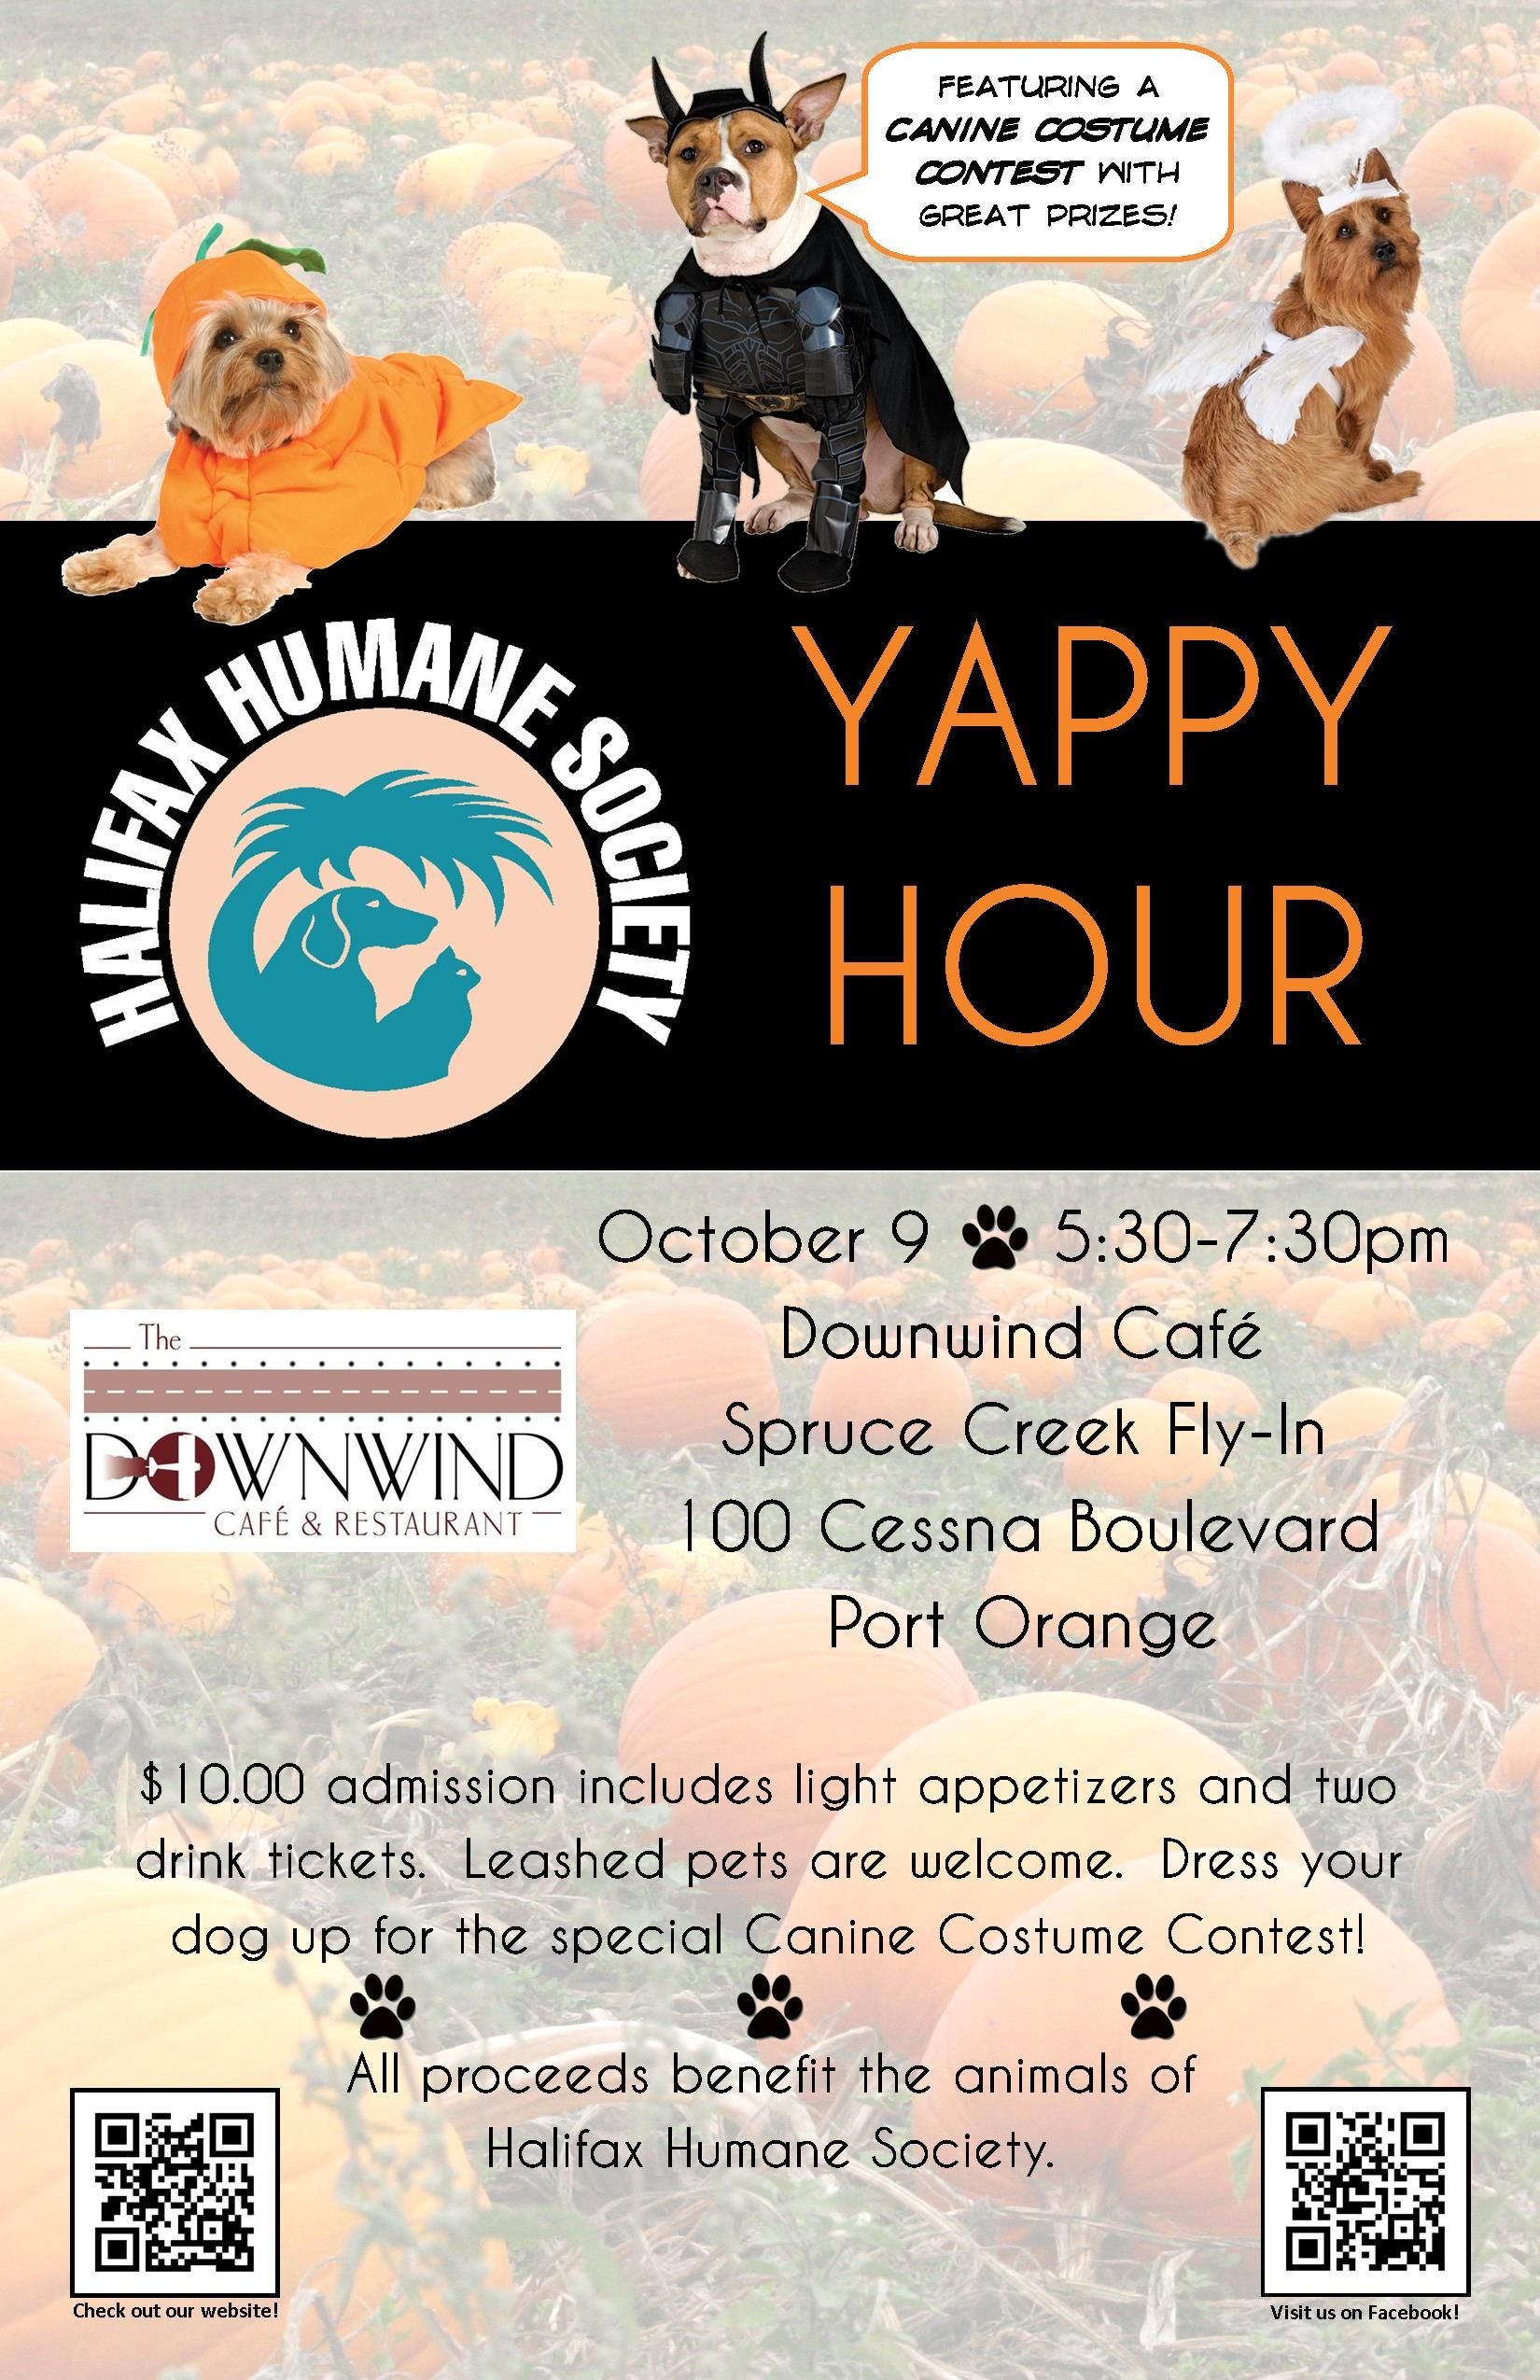 Join Hhs For The October Yappy Hour At The Downwind Cafe In The